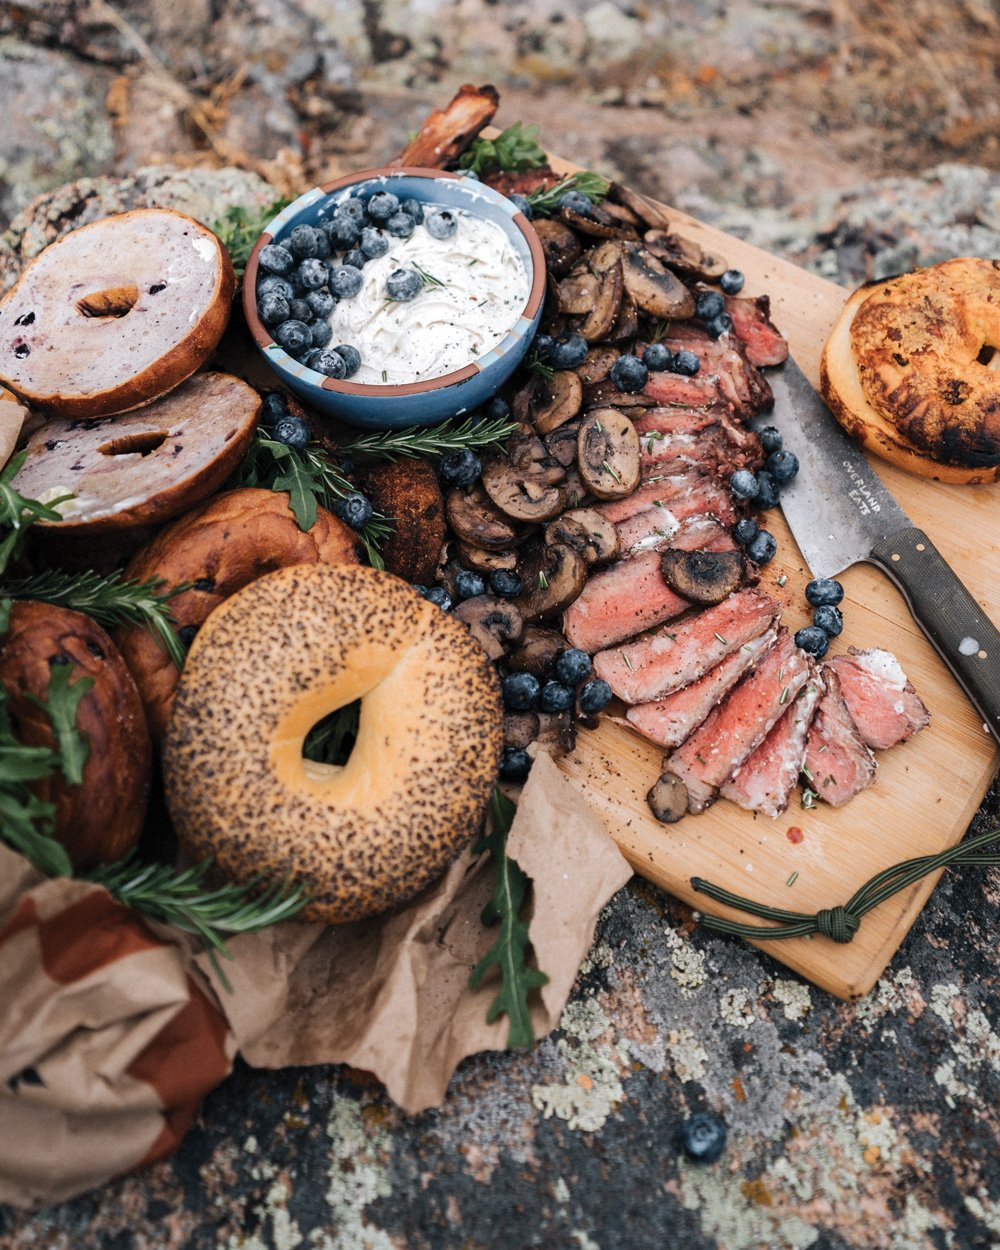 Presentation is not ignored with Overland Eats